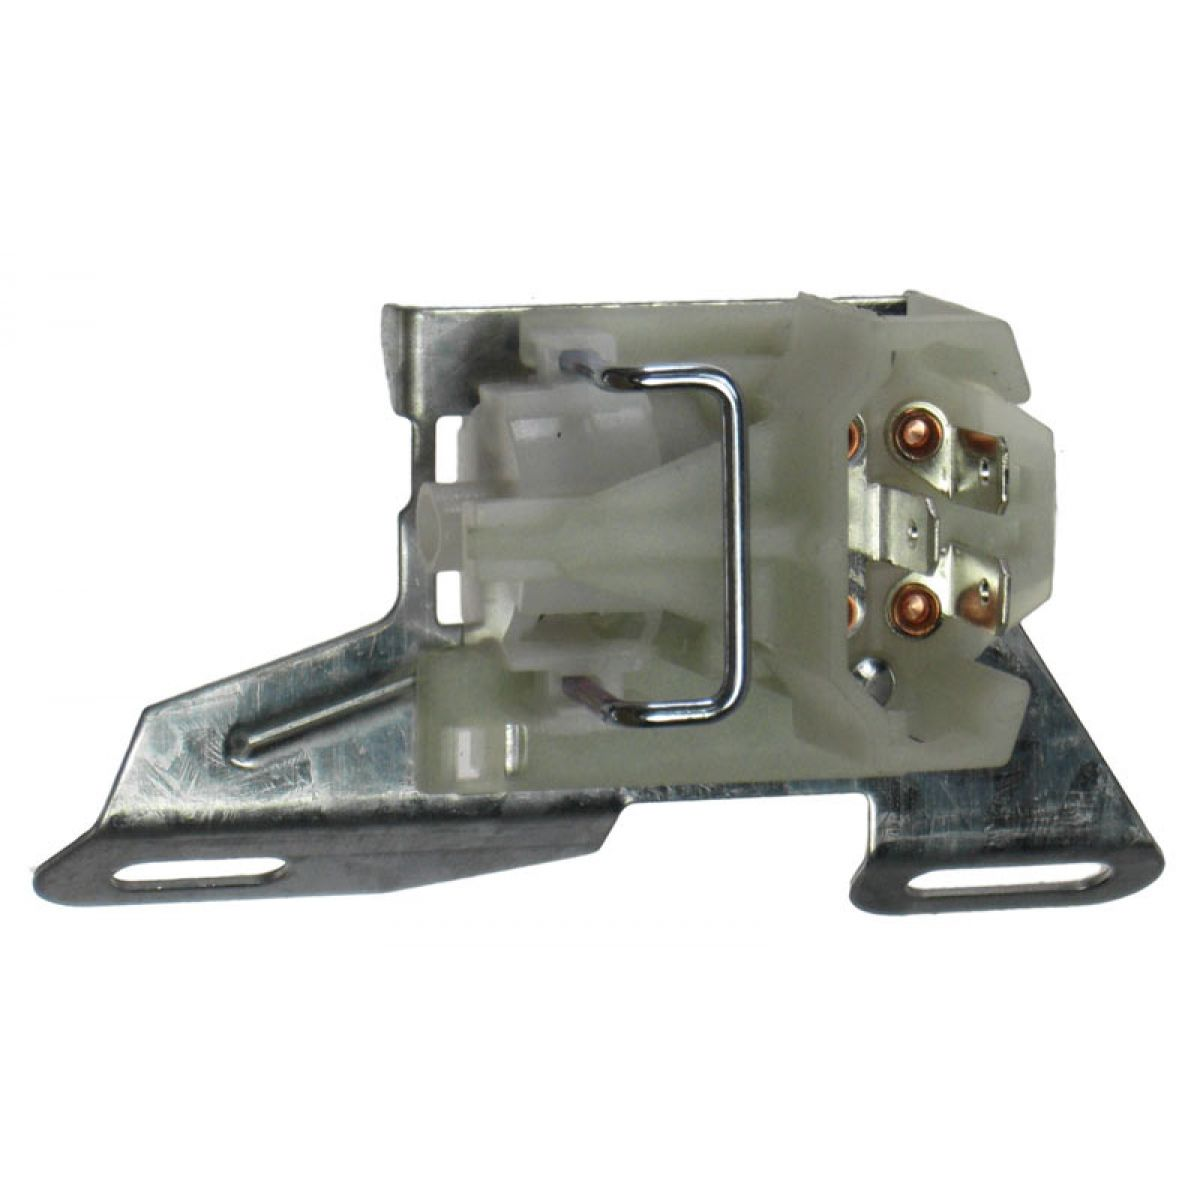 Steering Column Mounted Headlight Headlamp High Low Beam Dimmer Jeep Yj Wiring Harness Ebay Switch For Gm